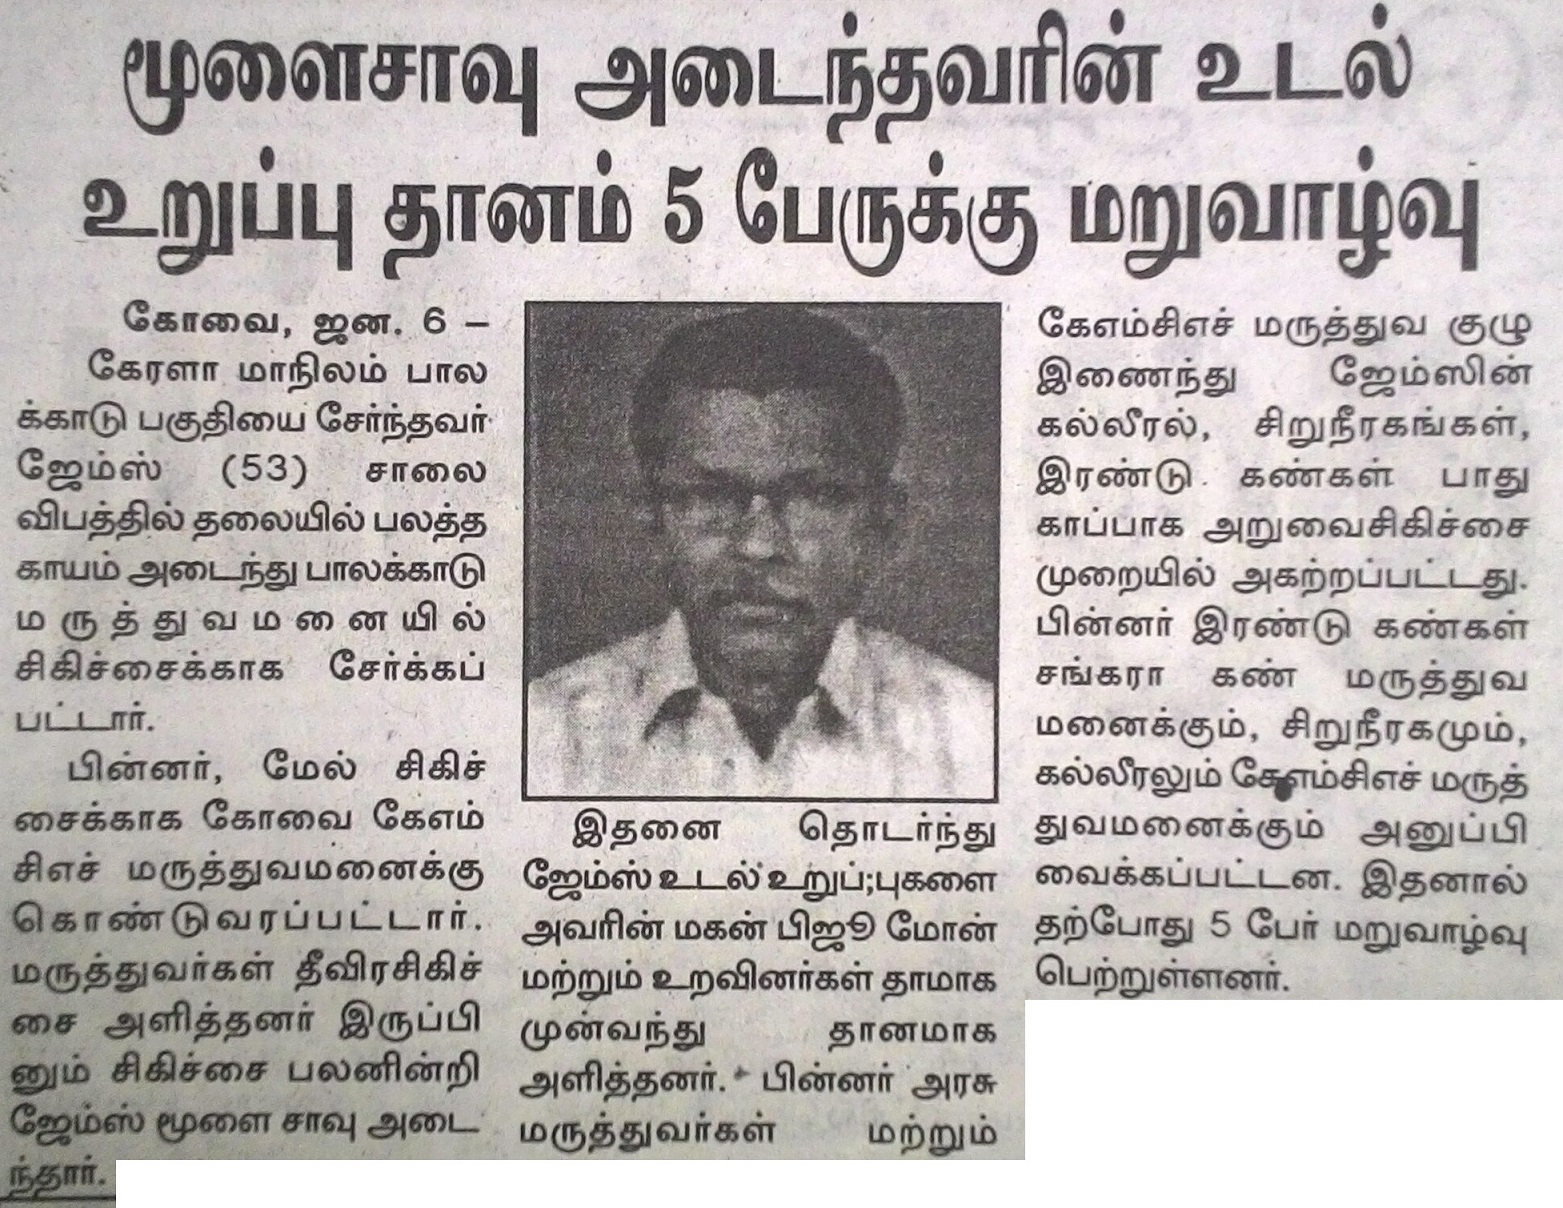 daily thanthi today news paper in tamil coimbatore pdf